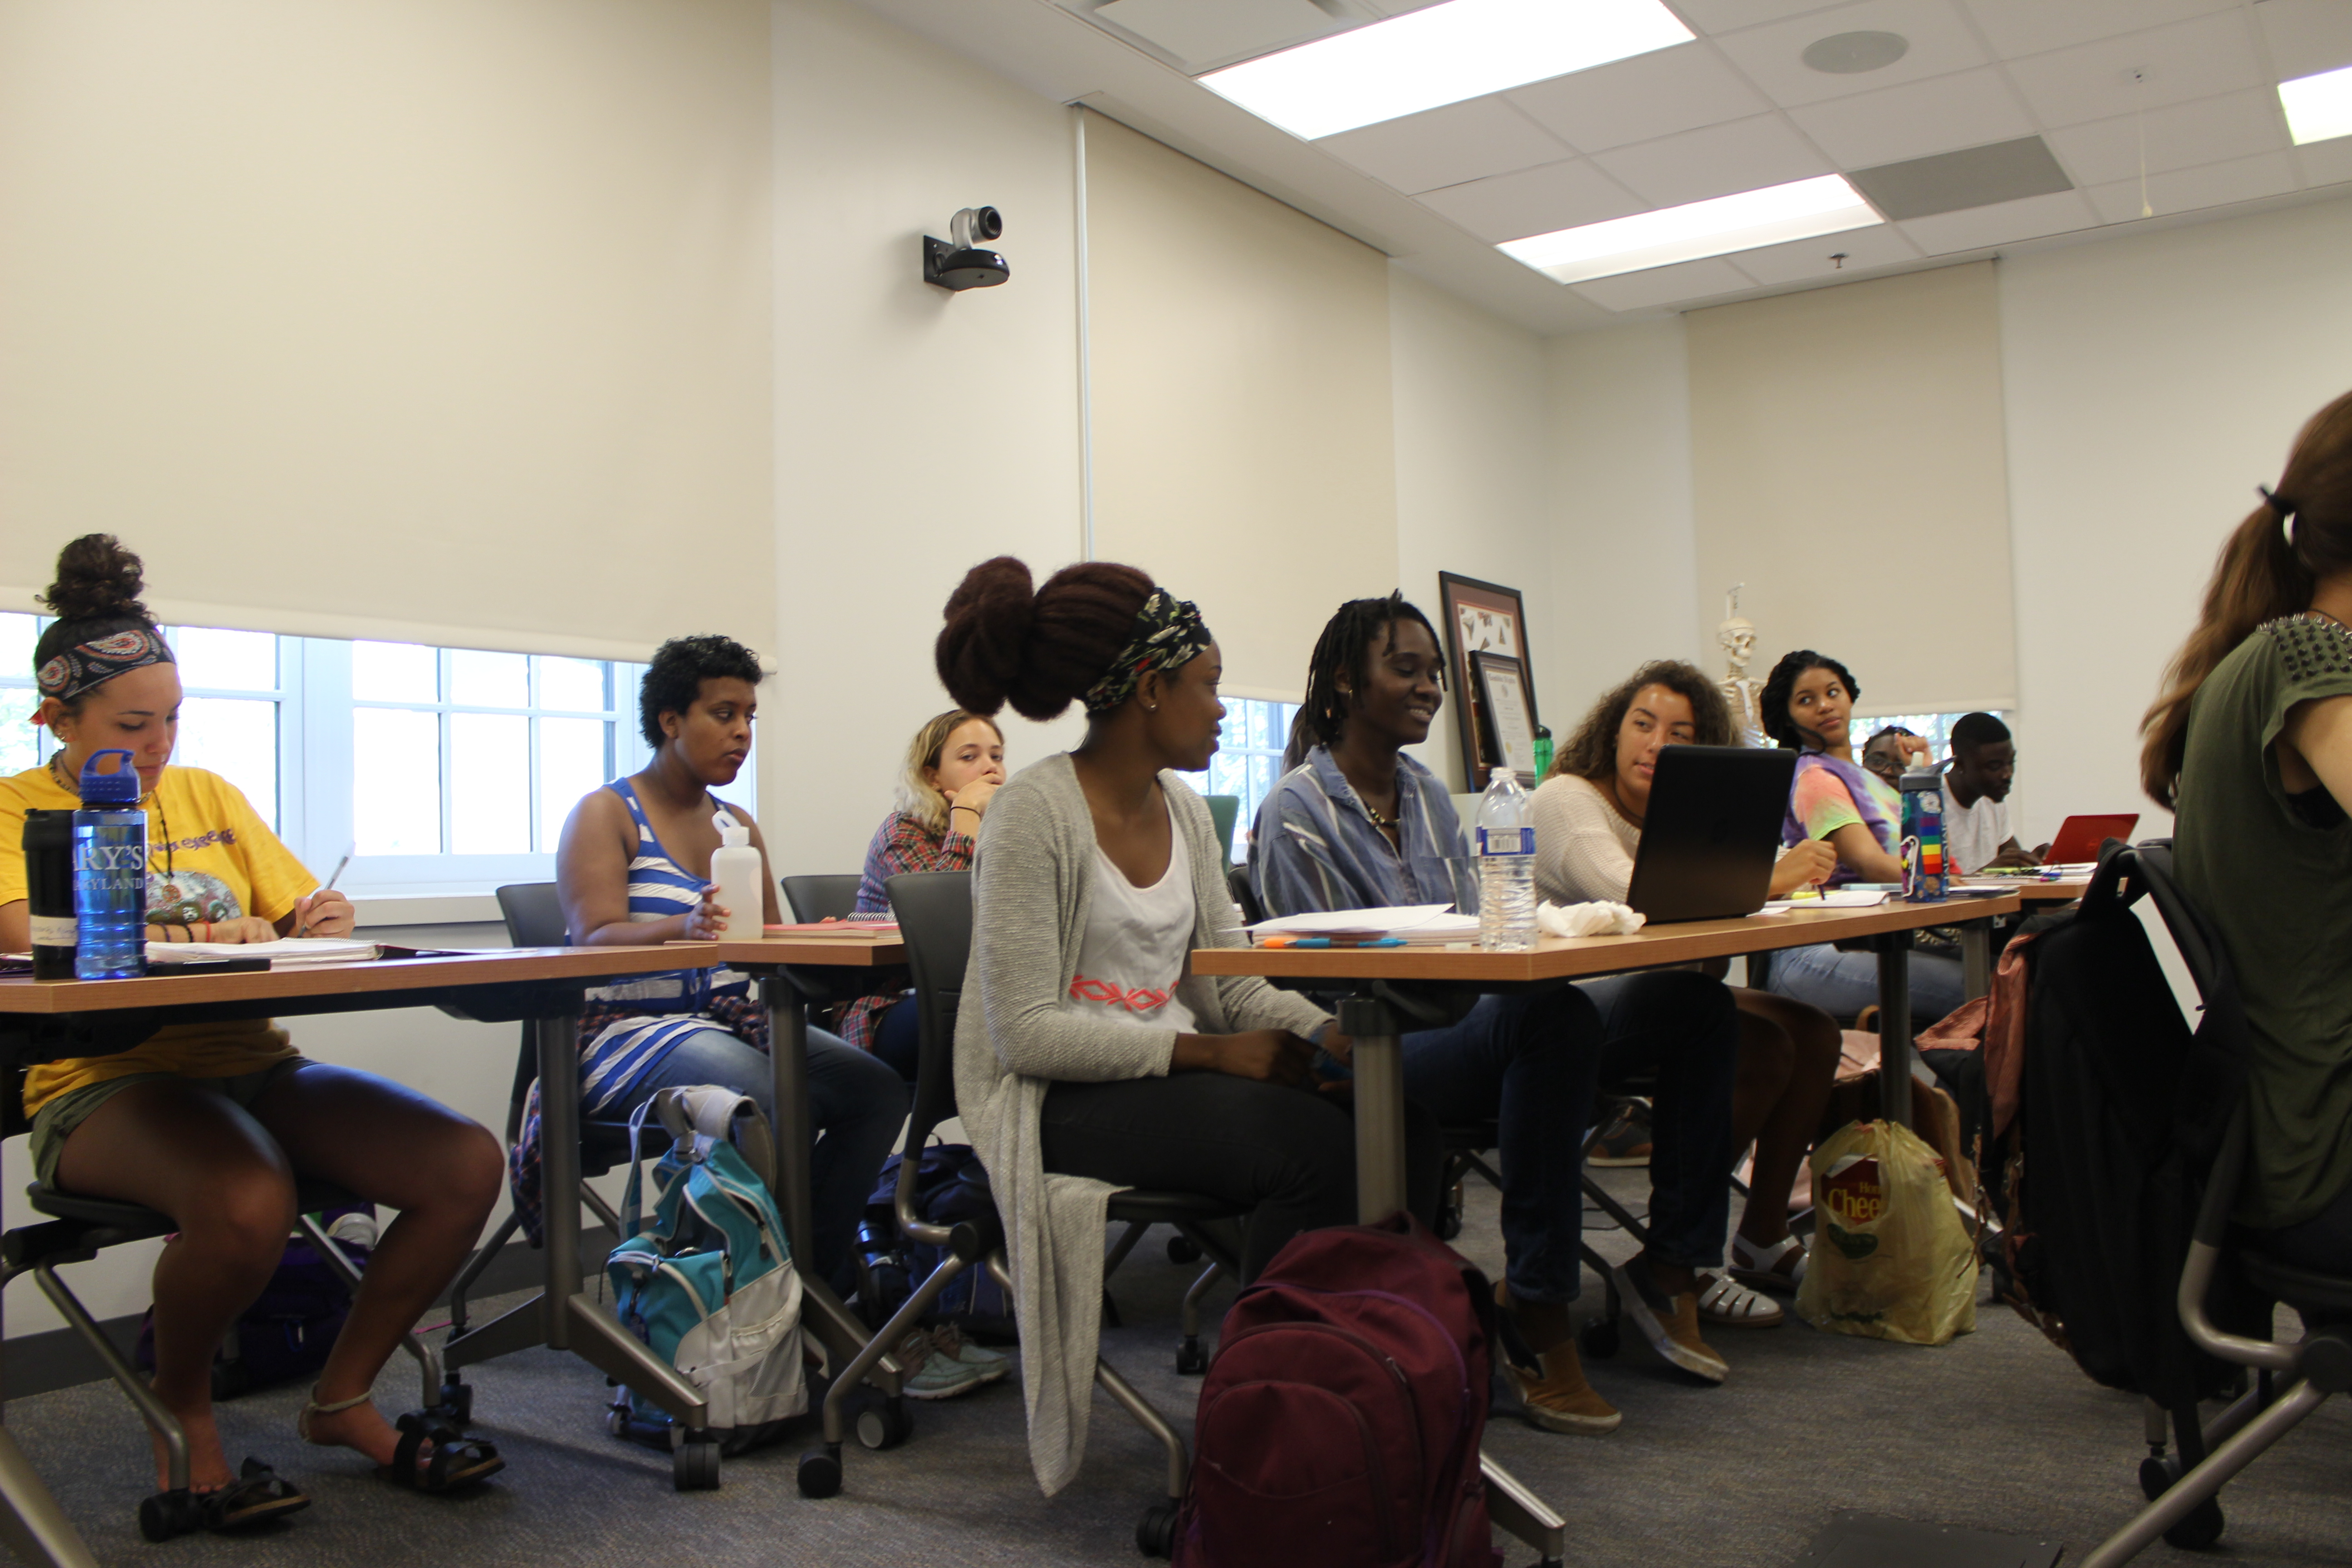 SMCM students talking in a classroom at Anne Arundel Hall